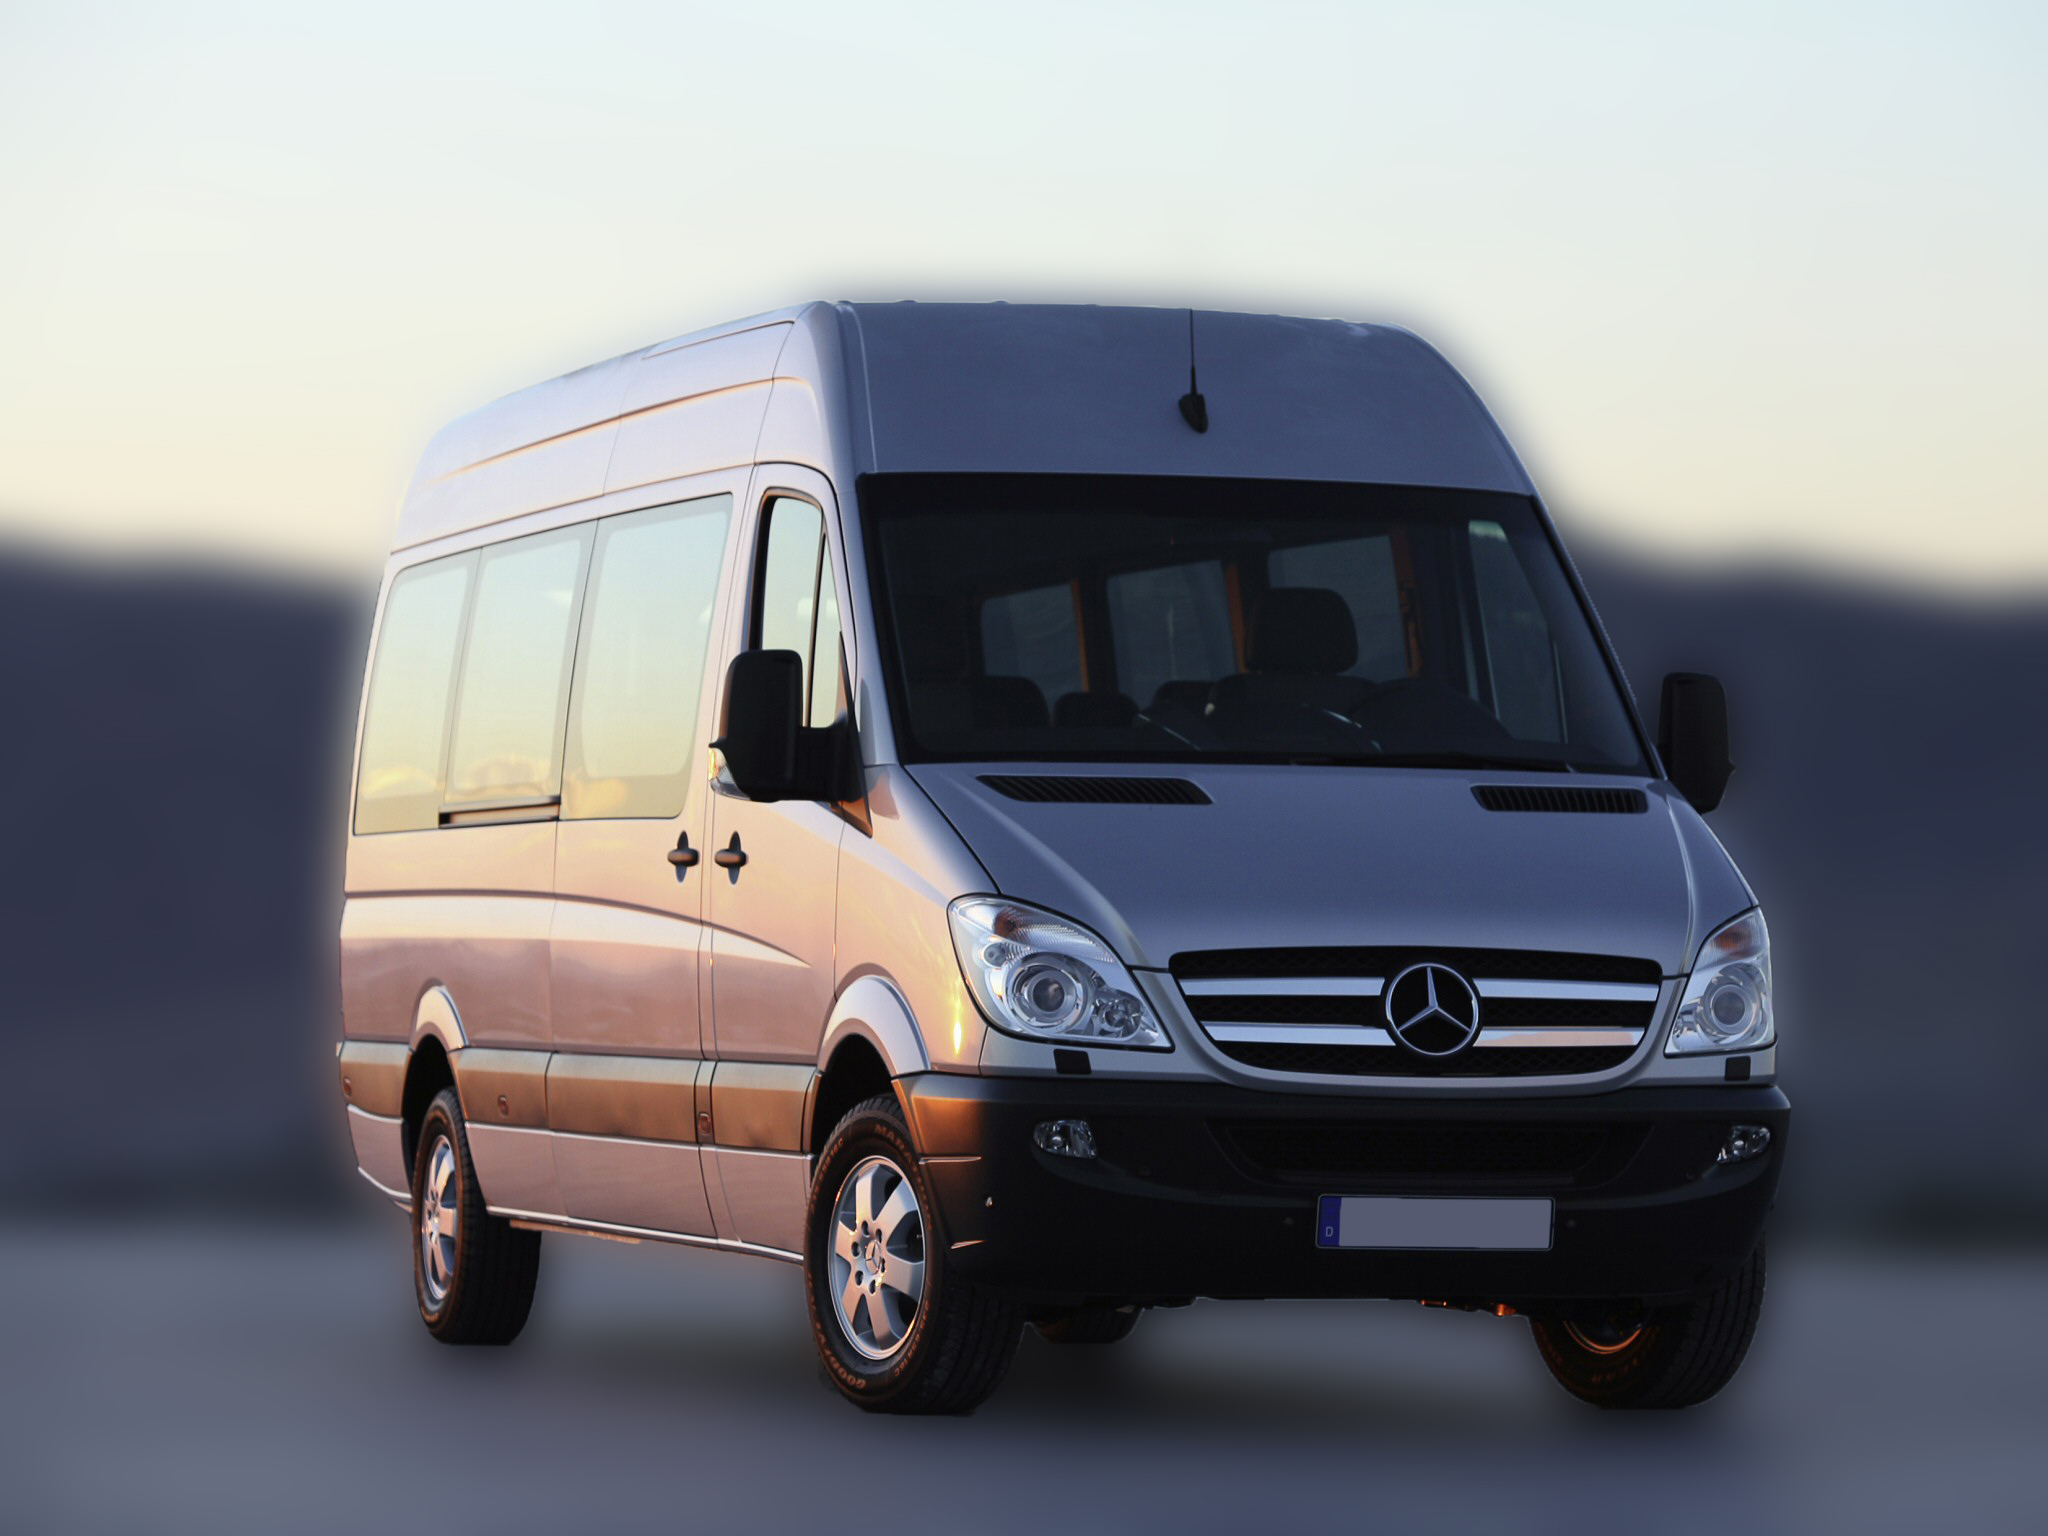 Hire mersedes benz sprinter van in astana kazeurotrans for Mercedes benz sprinter rental price